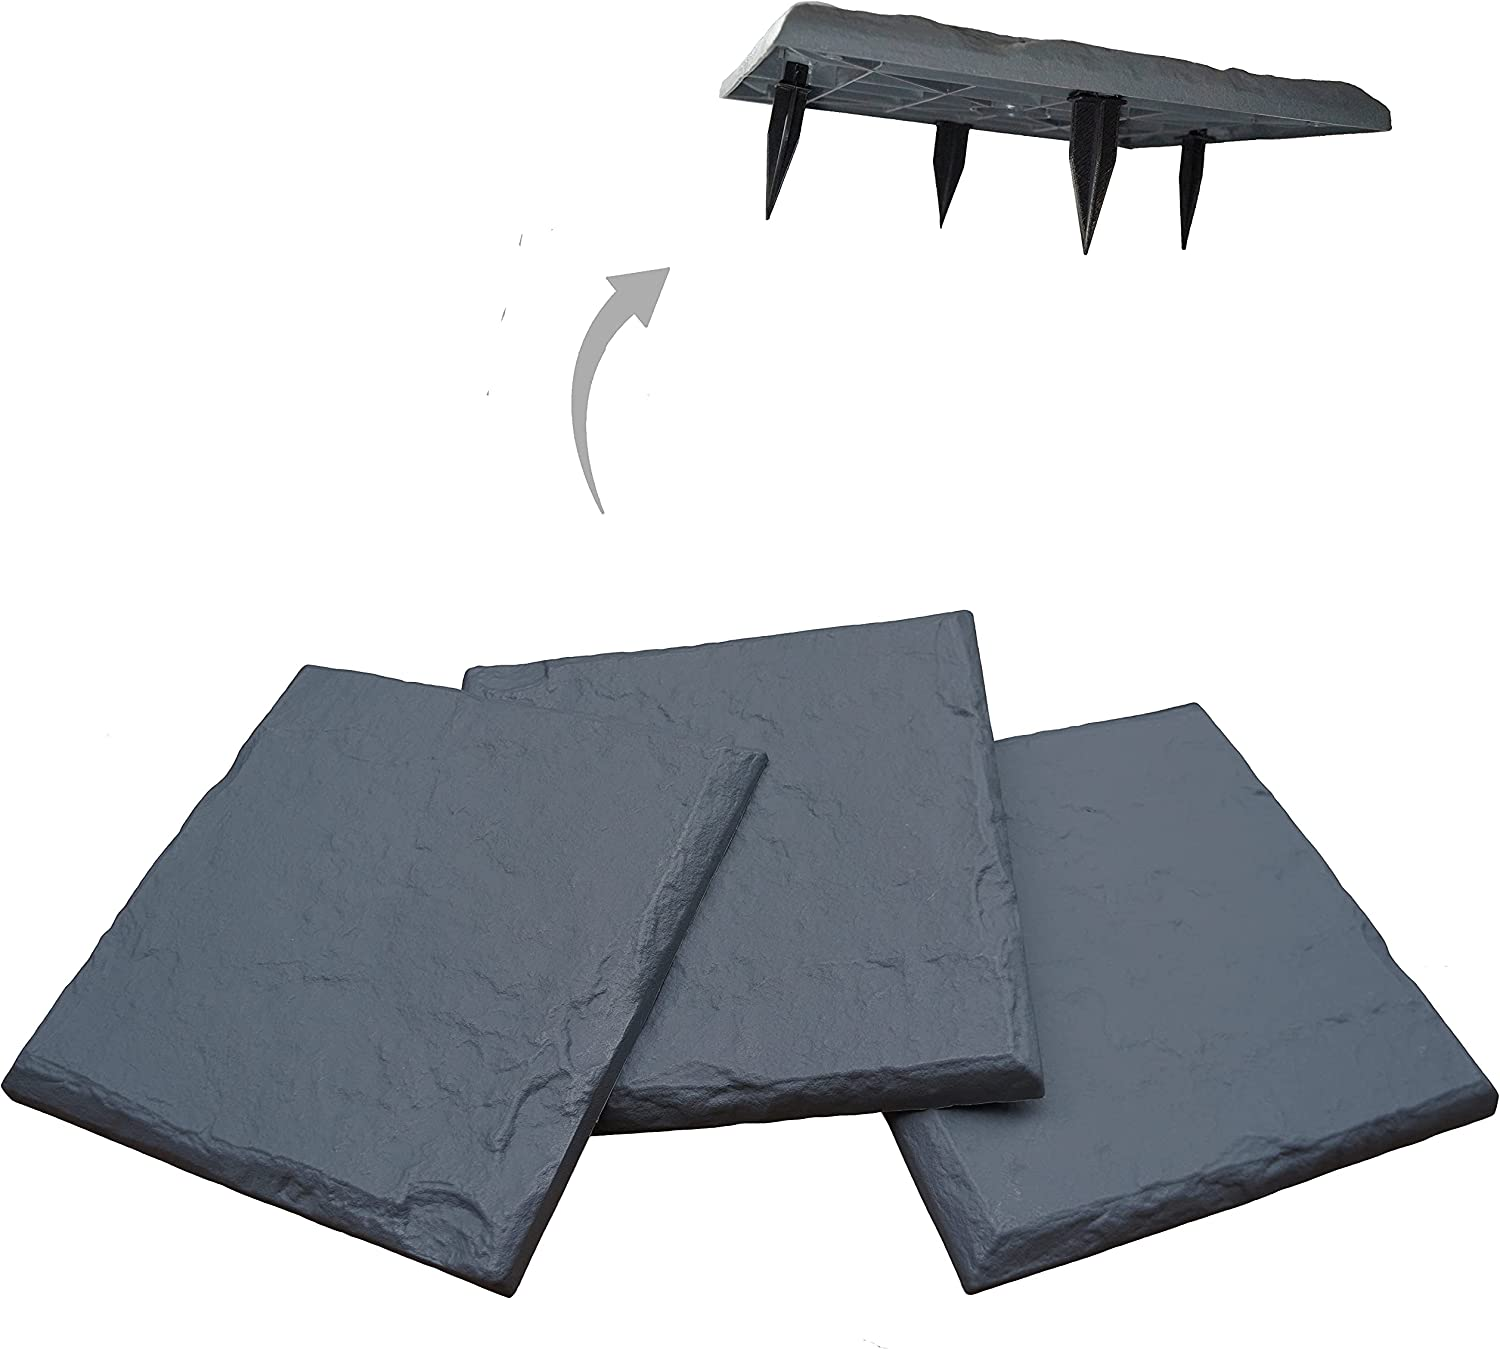 """Gardien 15.5"""" Slate Grey Polyresin Stepping Stones – Now with Larger/Wider 4.25"""" Ground Stakes - Decorative Pavers for Outdoor Walkway, Garden Pathway, Lawn, Yard, or Home Walking Path (8)"""